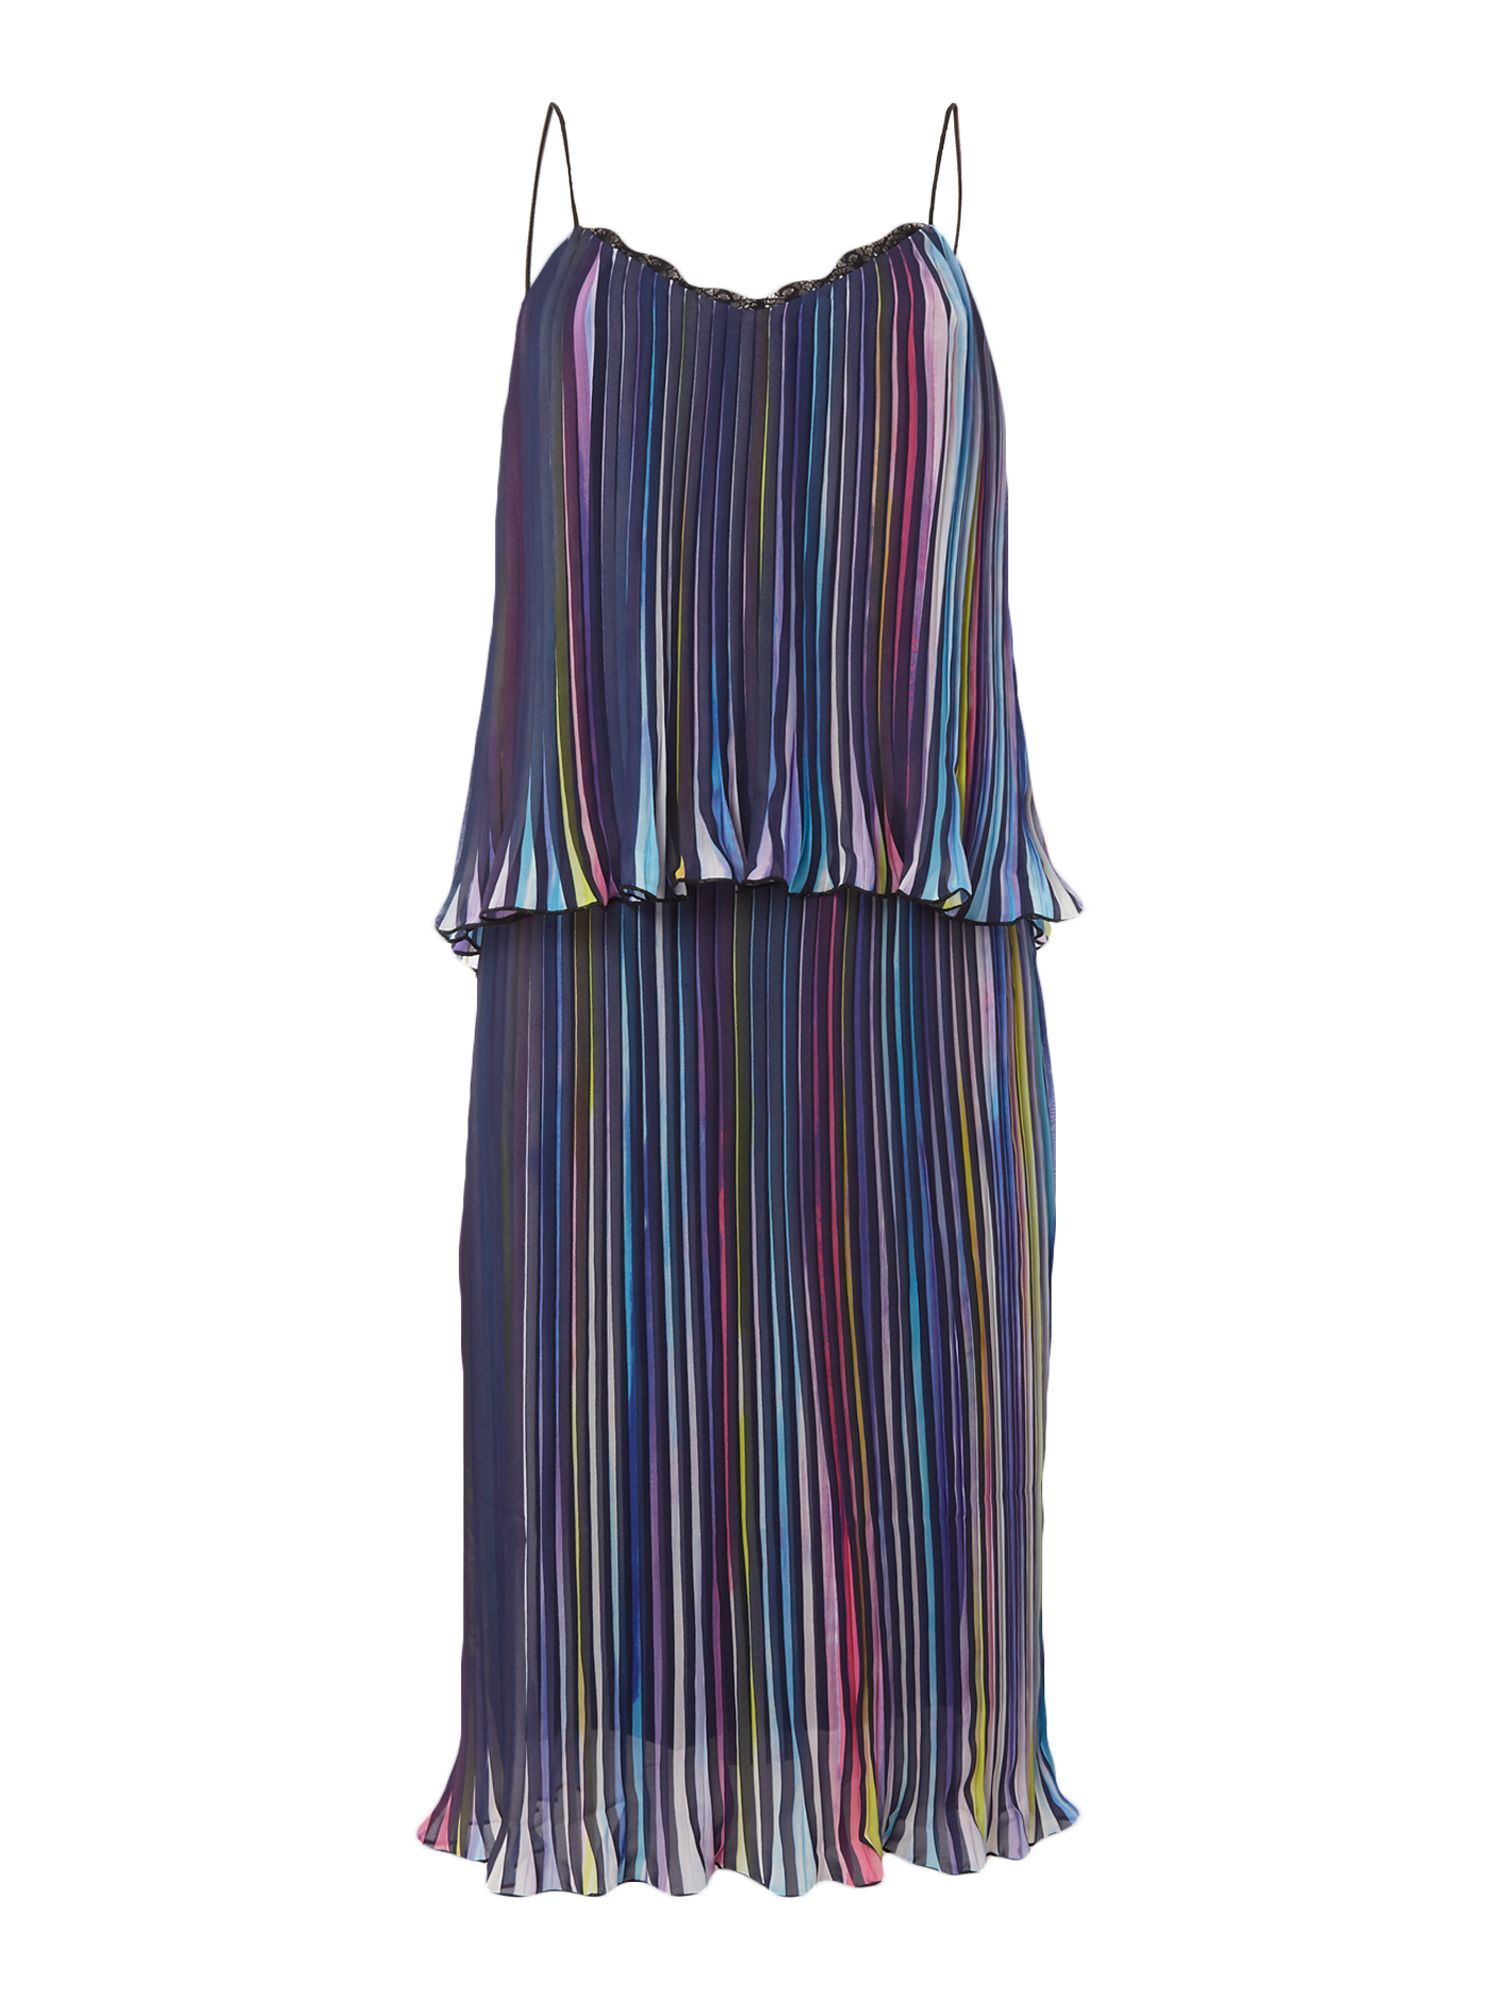 Little White Lies Thin Strap Overlay Pleated Mini Dress, Multi-Coloured